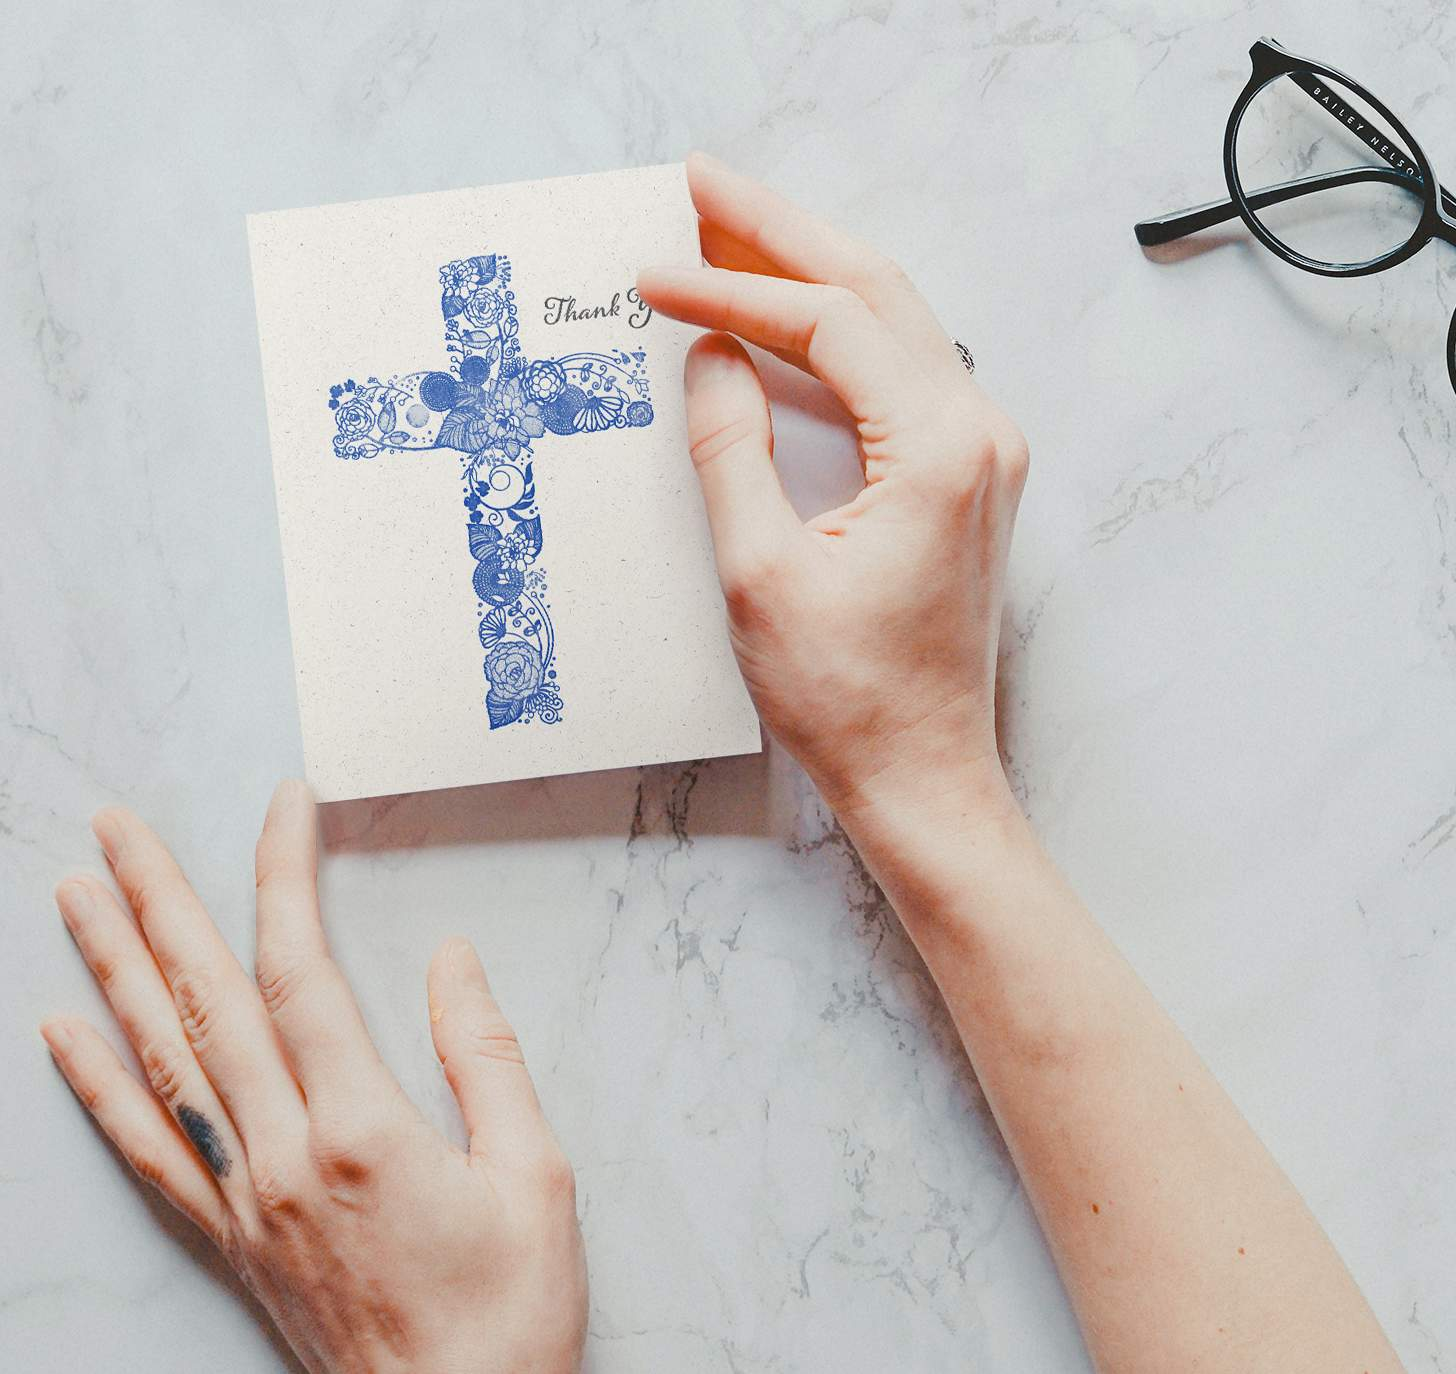 Woman's hand holding card with blue floral cross design on marble background